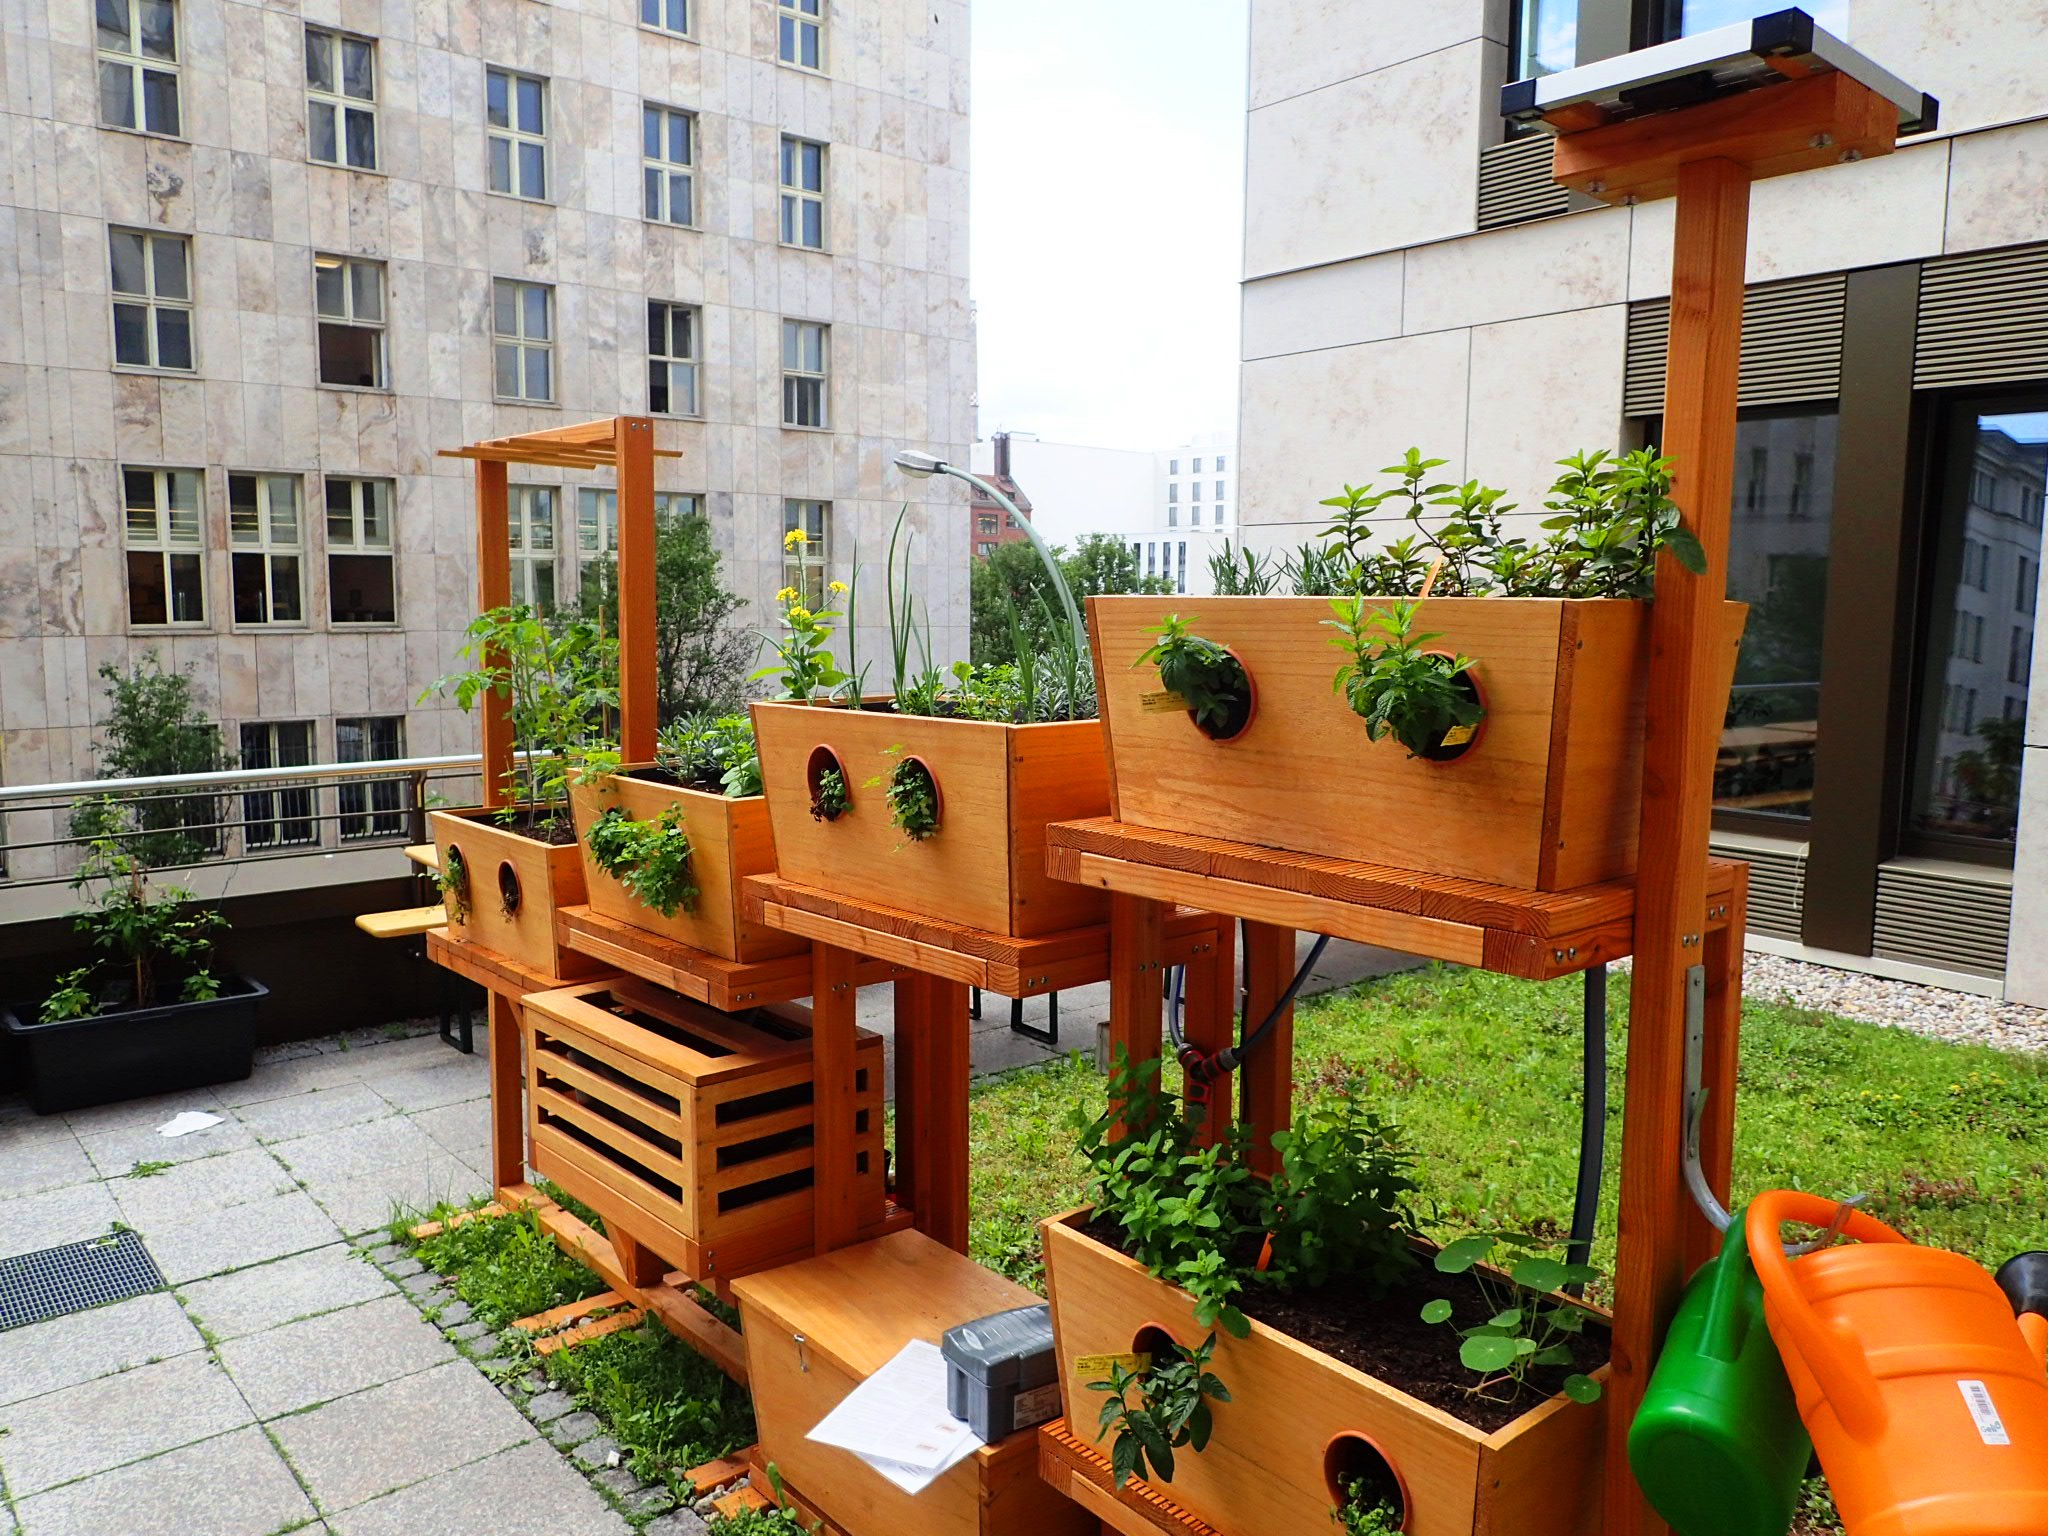 vertical farming urban gardening liegt voll im trend. Black Bedroom Furniture Sets. Home Design Ideas